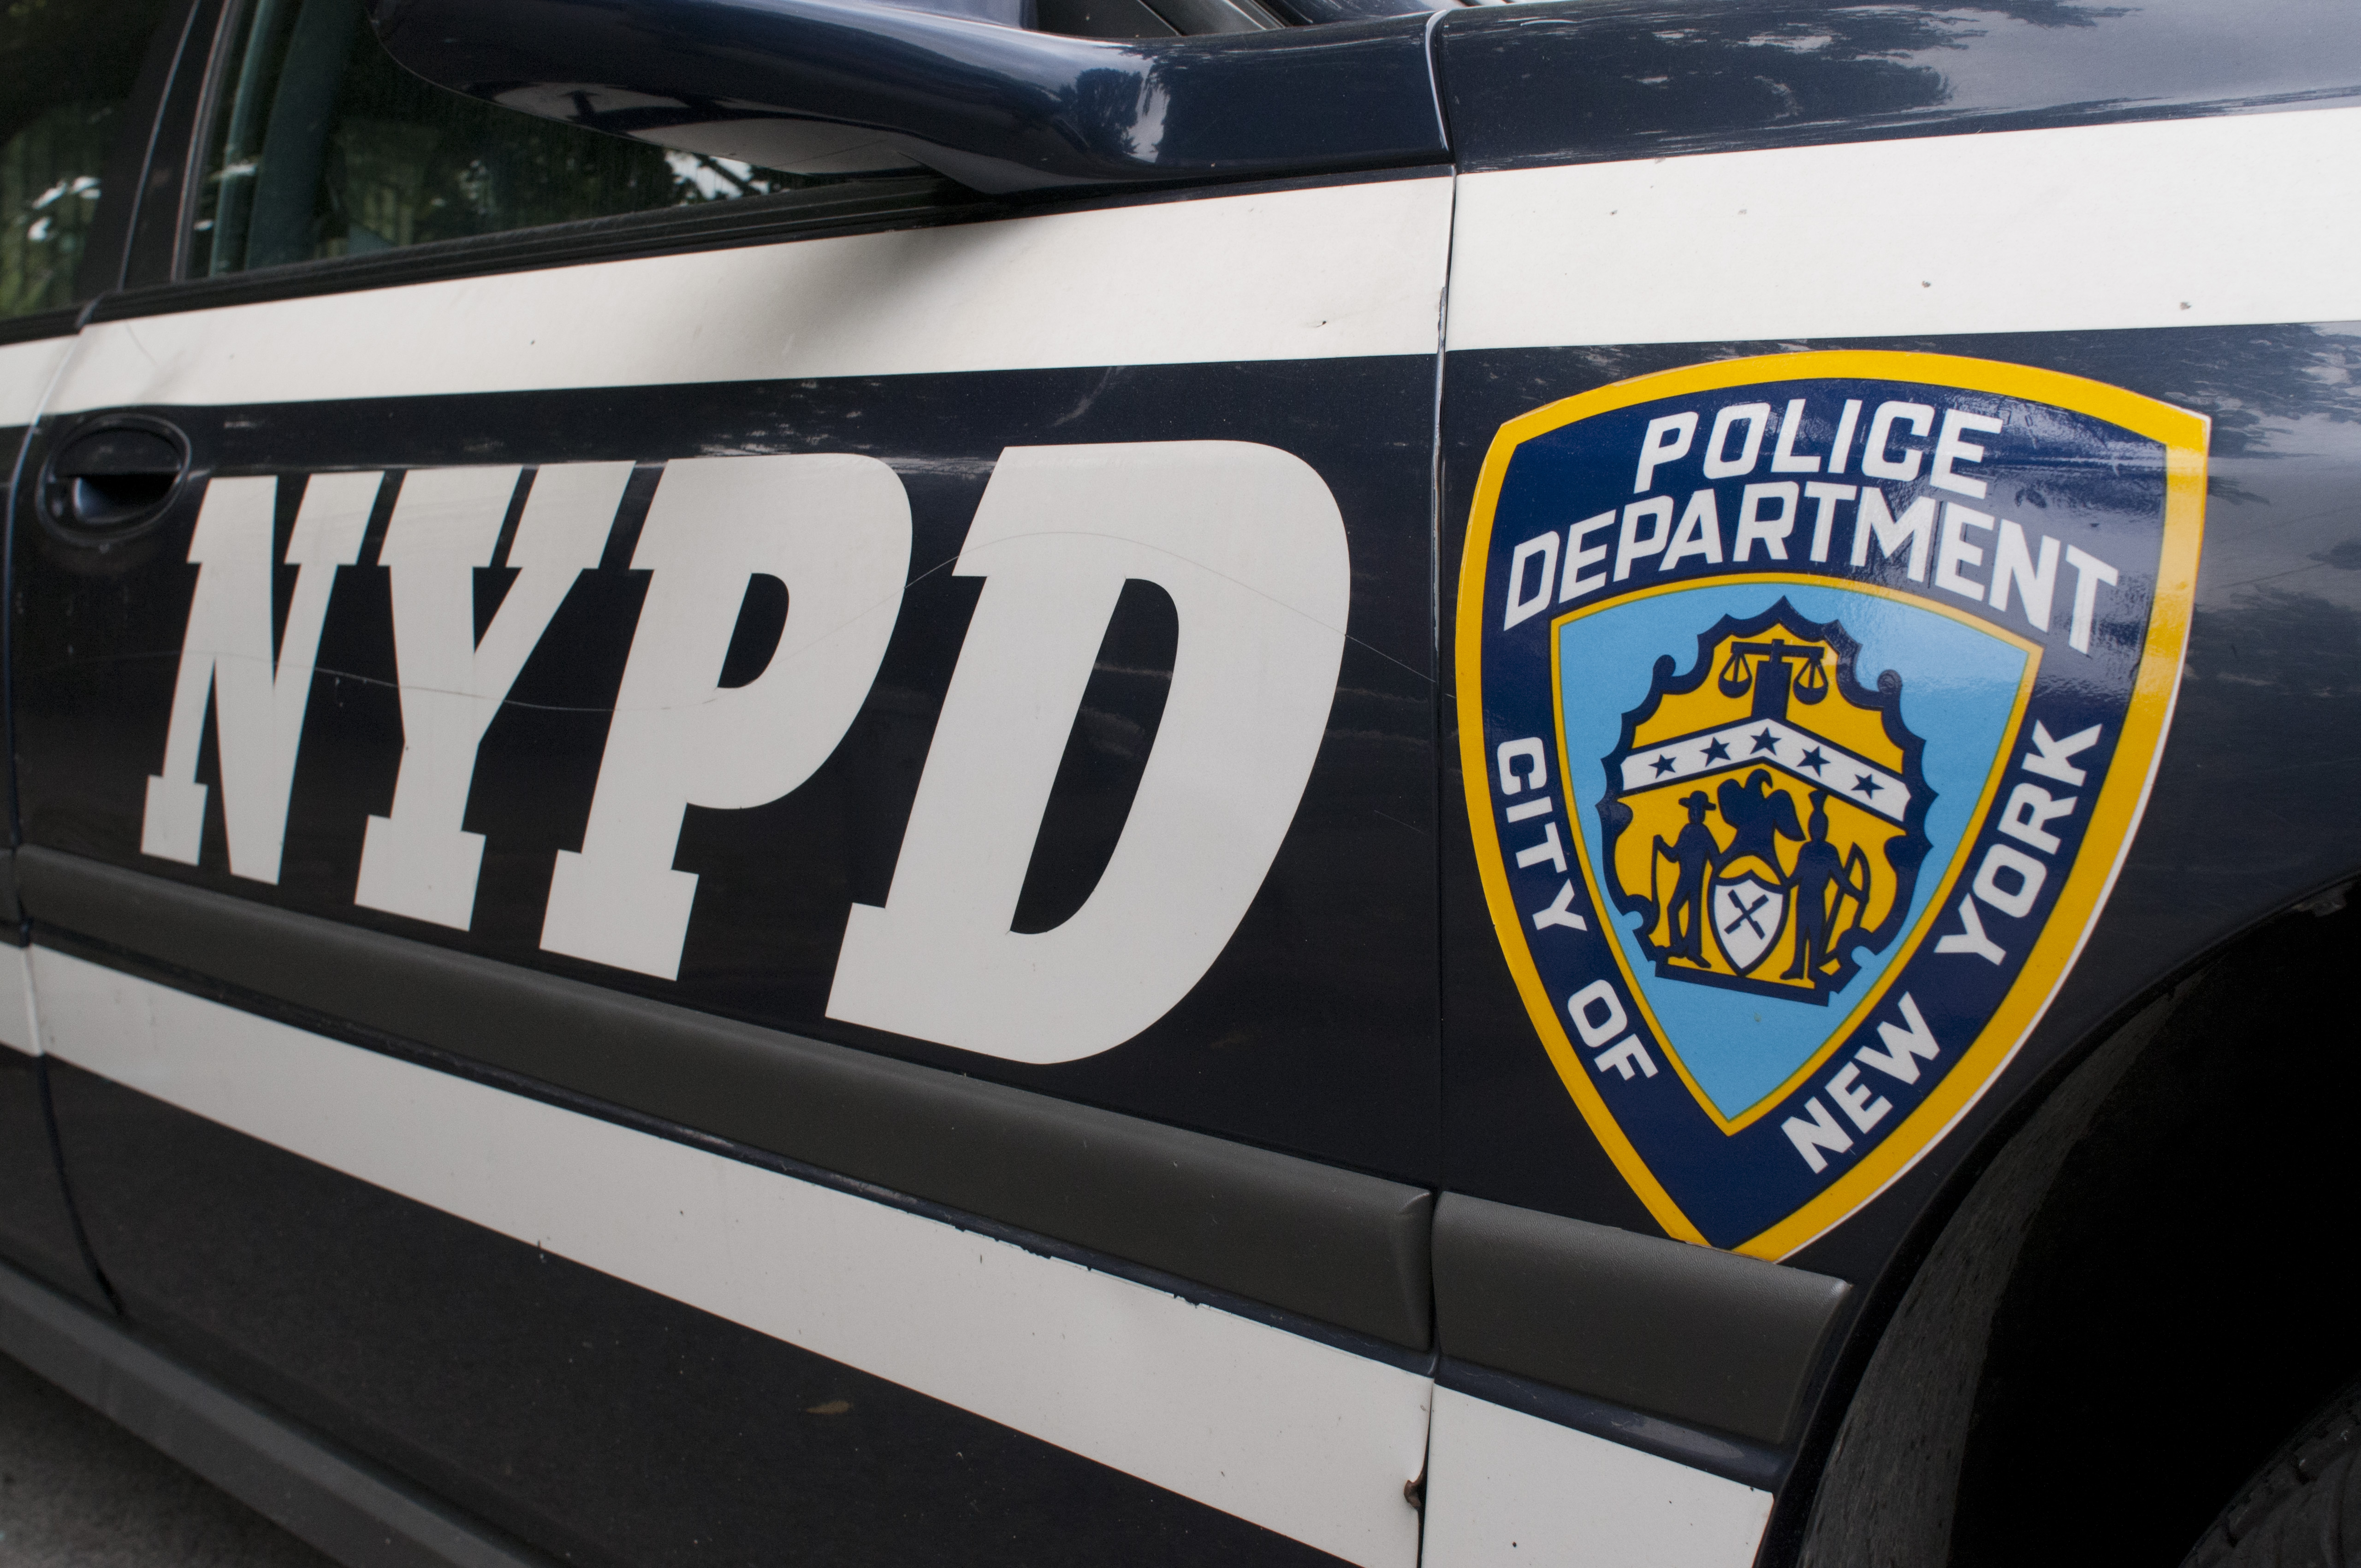 2 ex-NYPD detectives admitted to having sex with a teen after arresting her. They won't face rape charges.